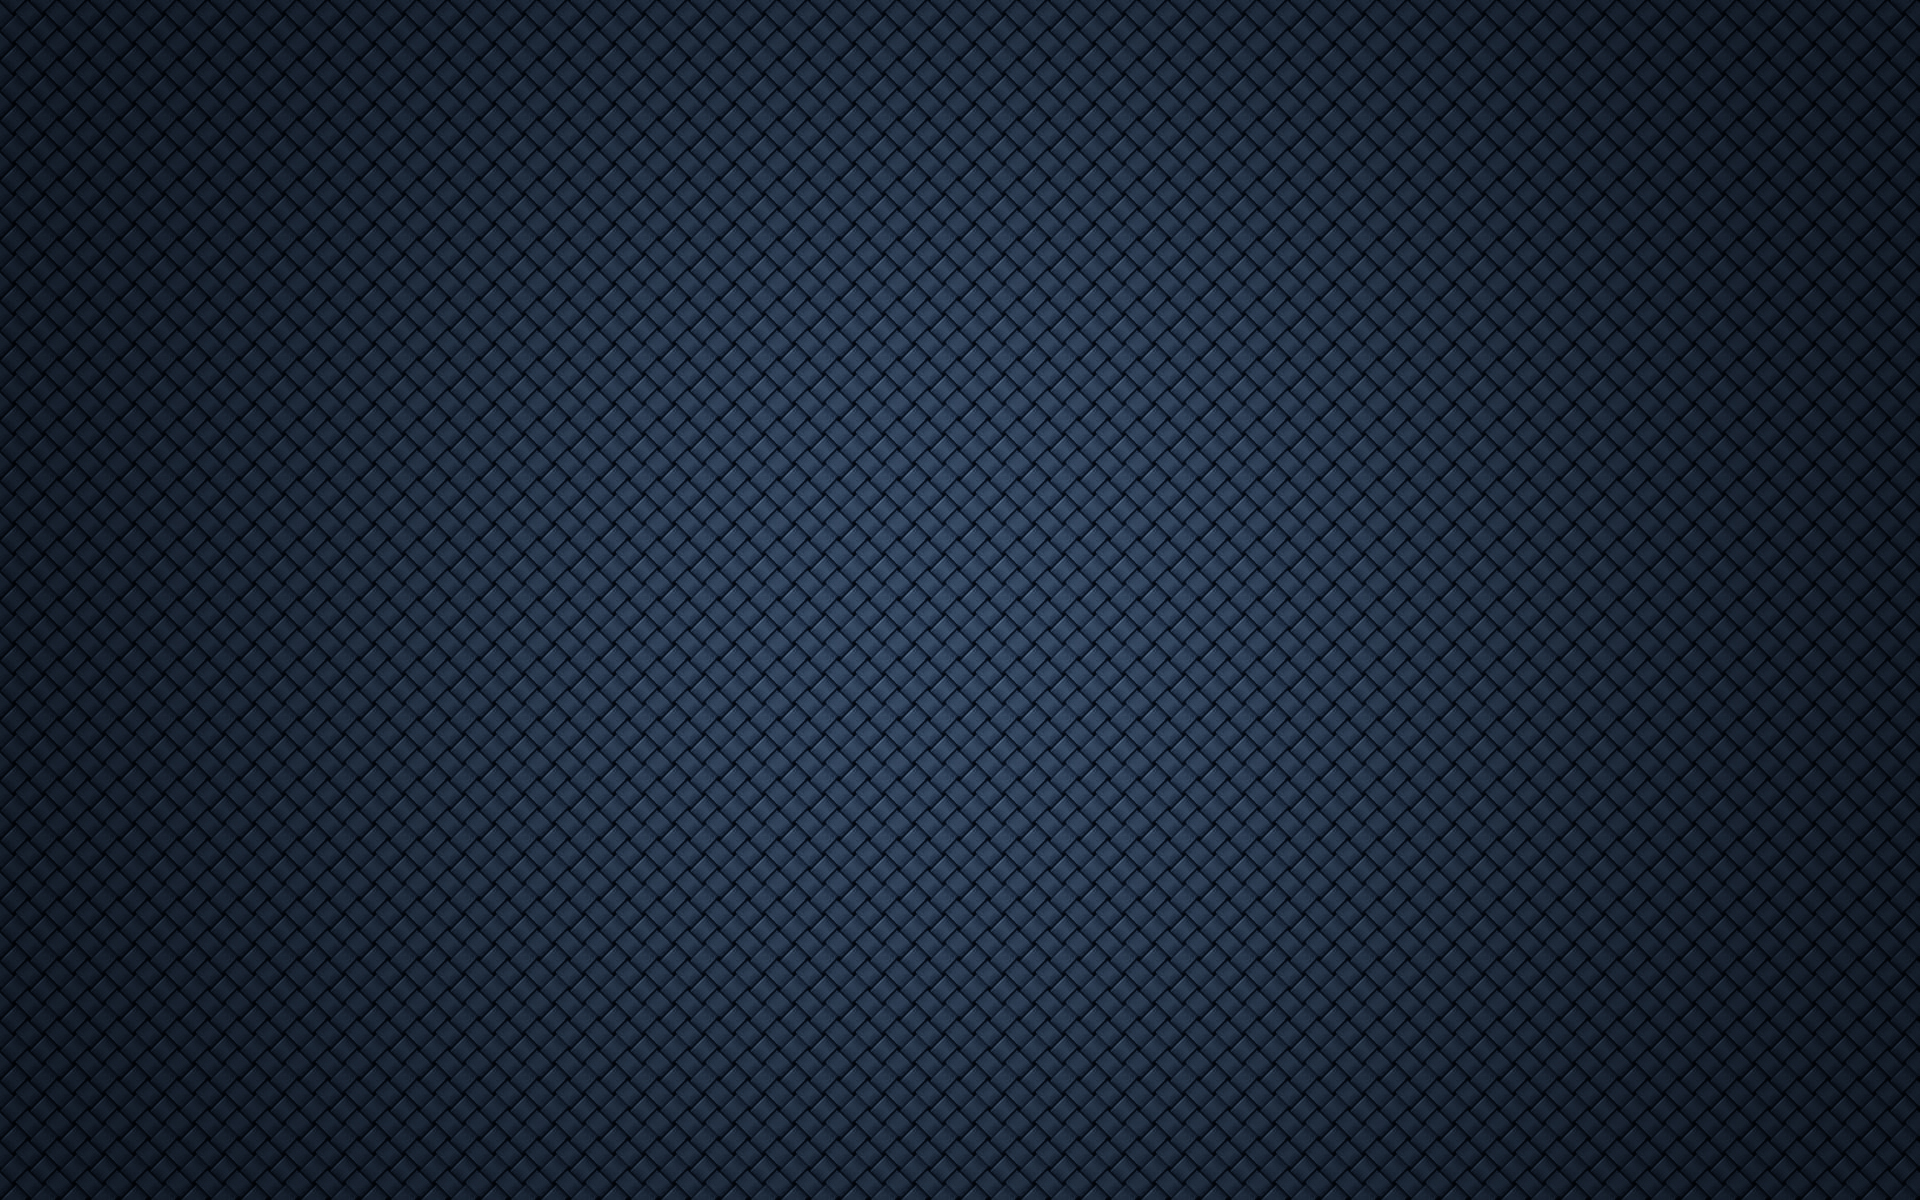 Texture Background Wallpaper